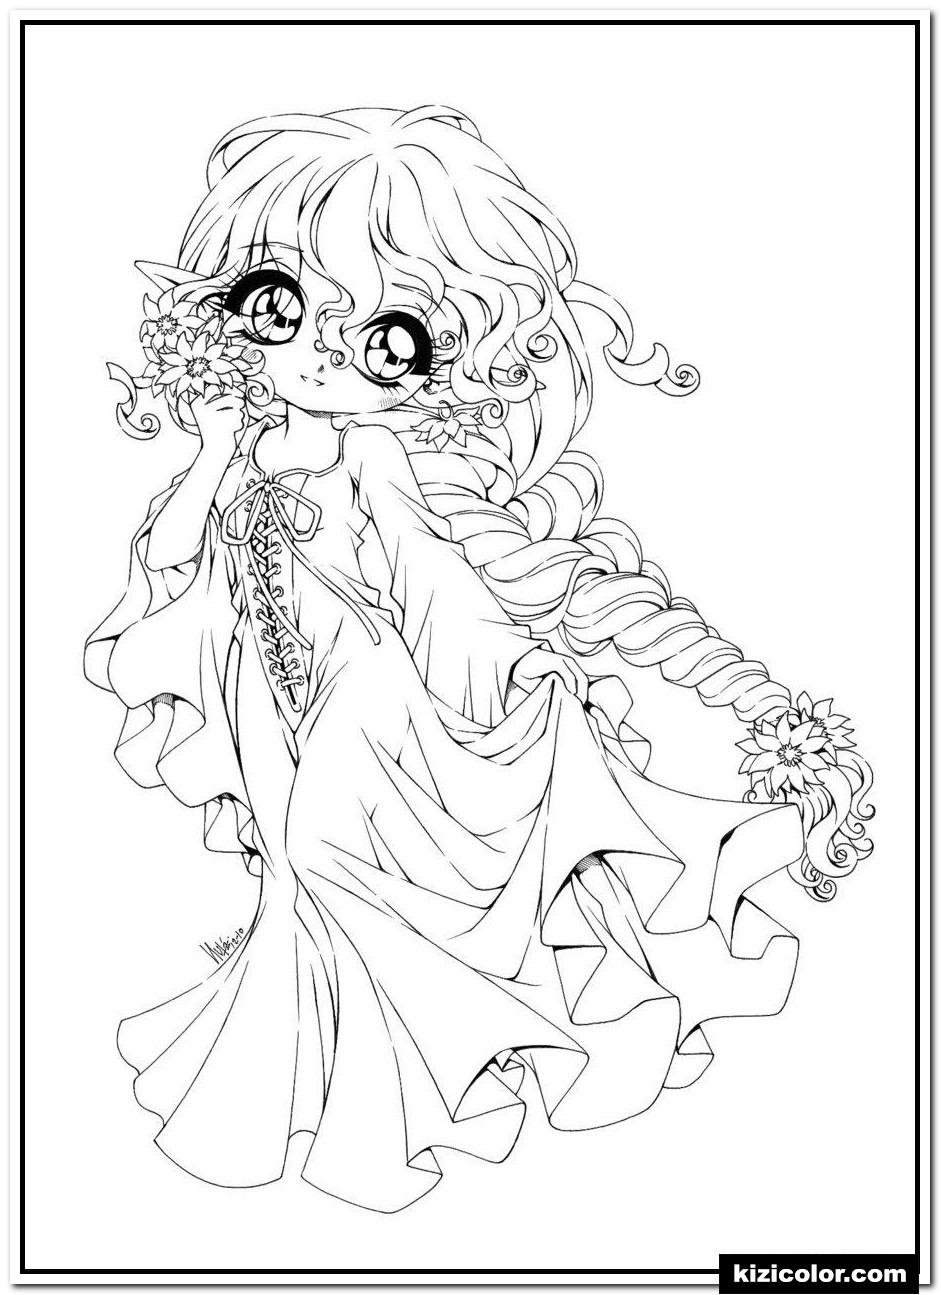 Anime Chibi Coloring Pages Coloring Home